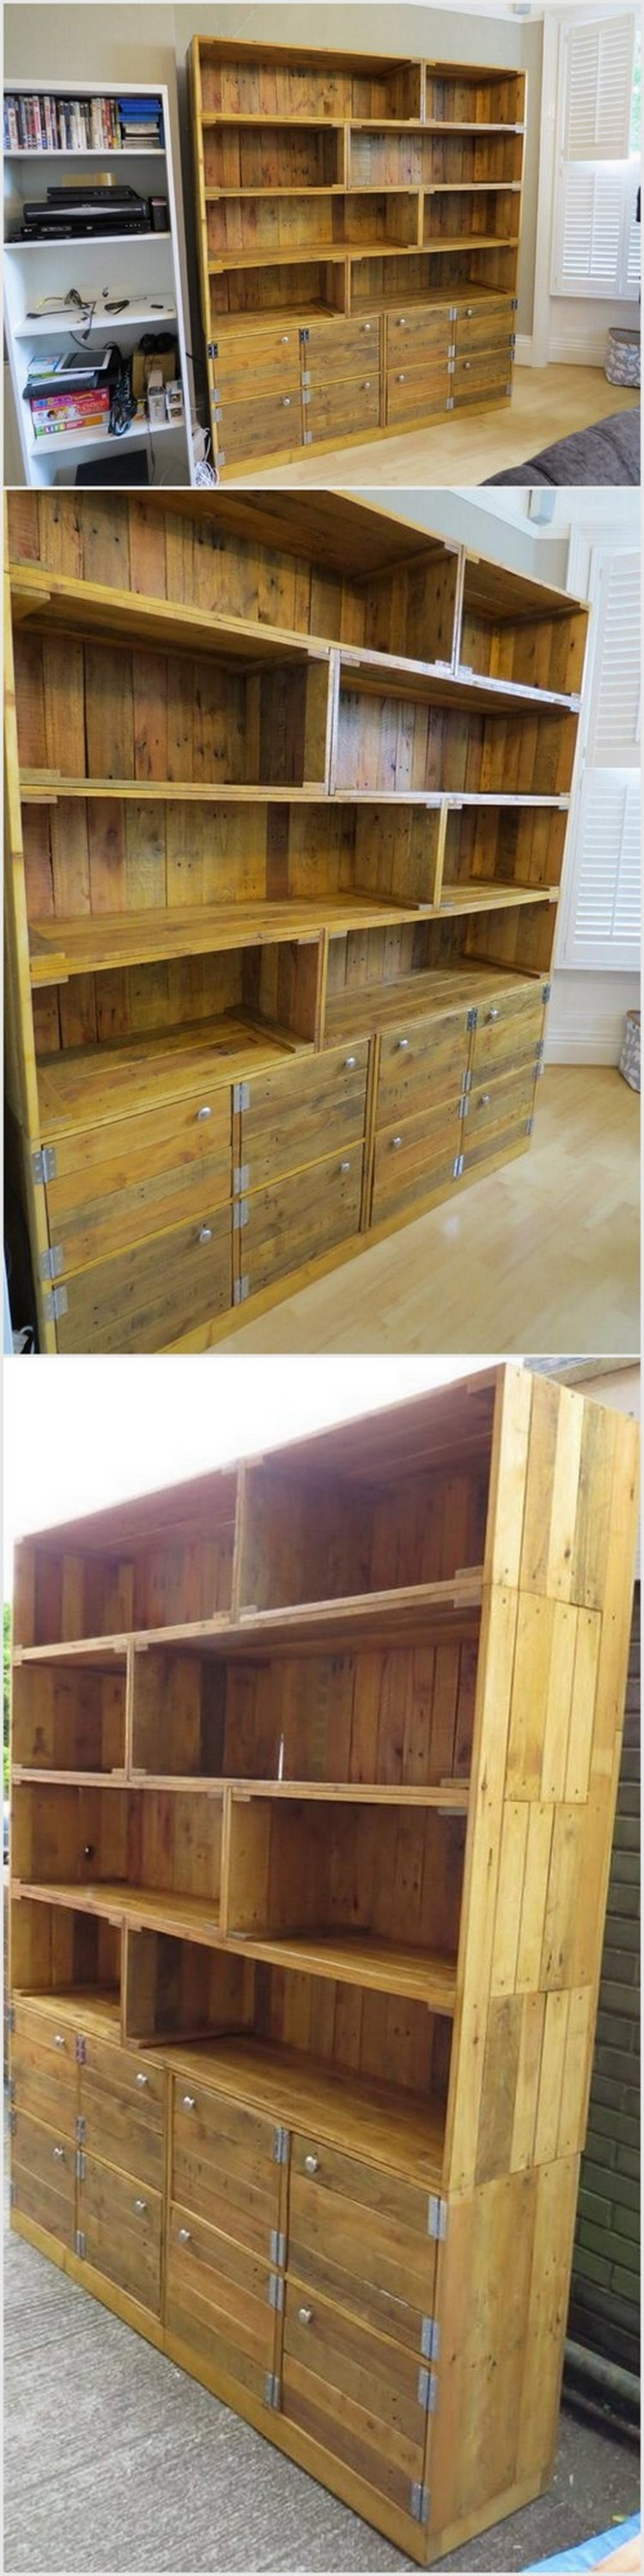 Big Pallet Shelving Unit and Cabinets